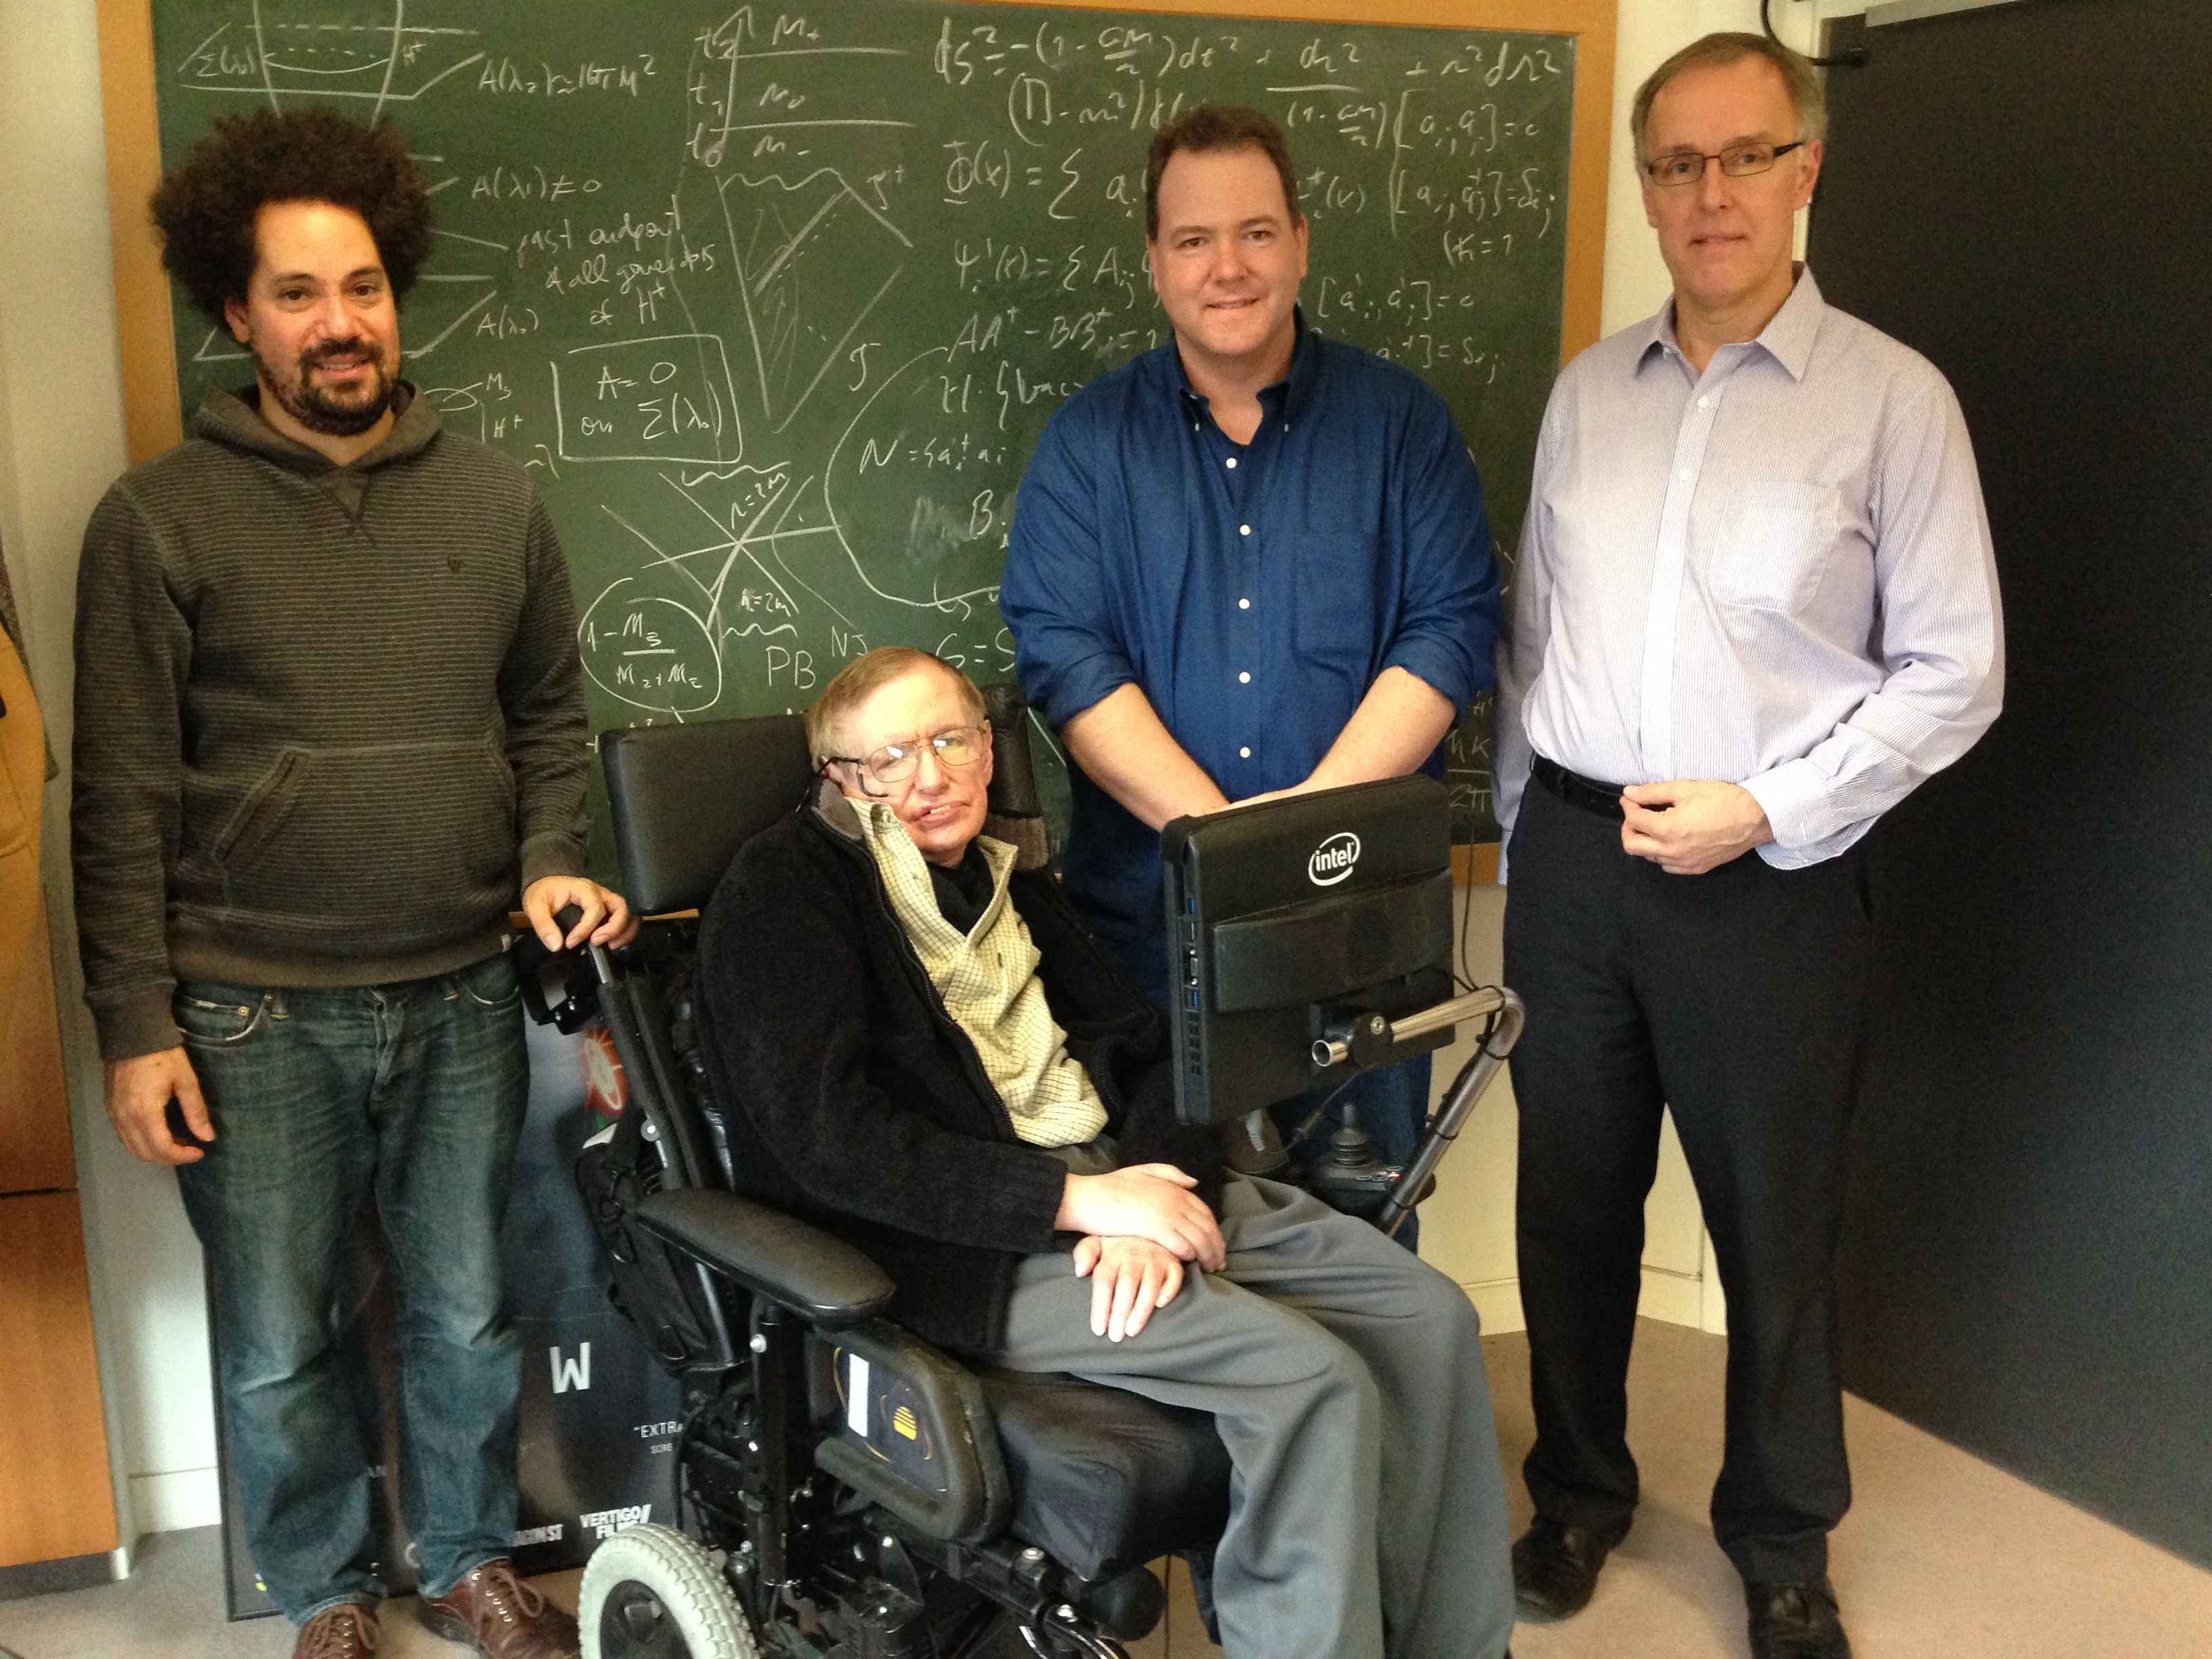 Stephen Hawking with new computer